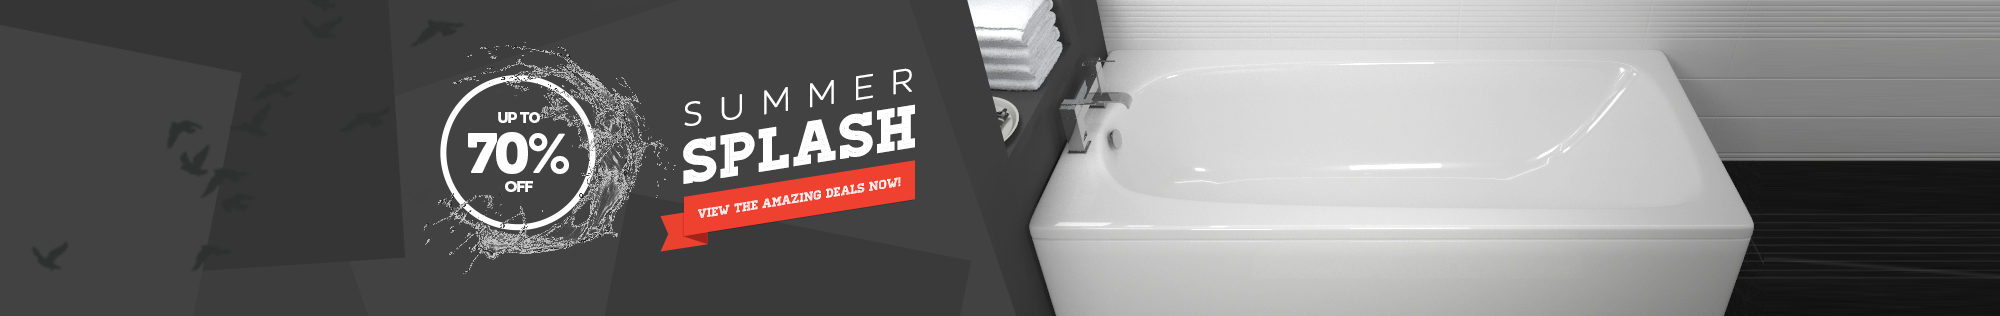 Up to 70% off Summer Splash - Click here to view deals